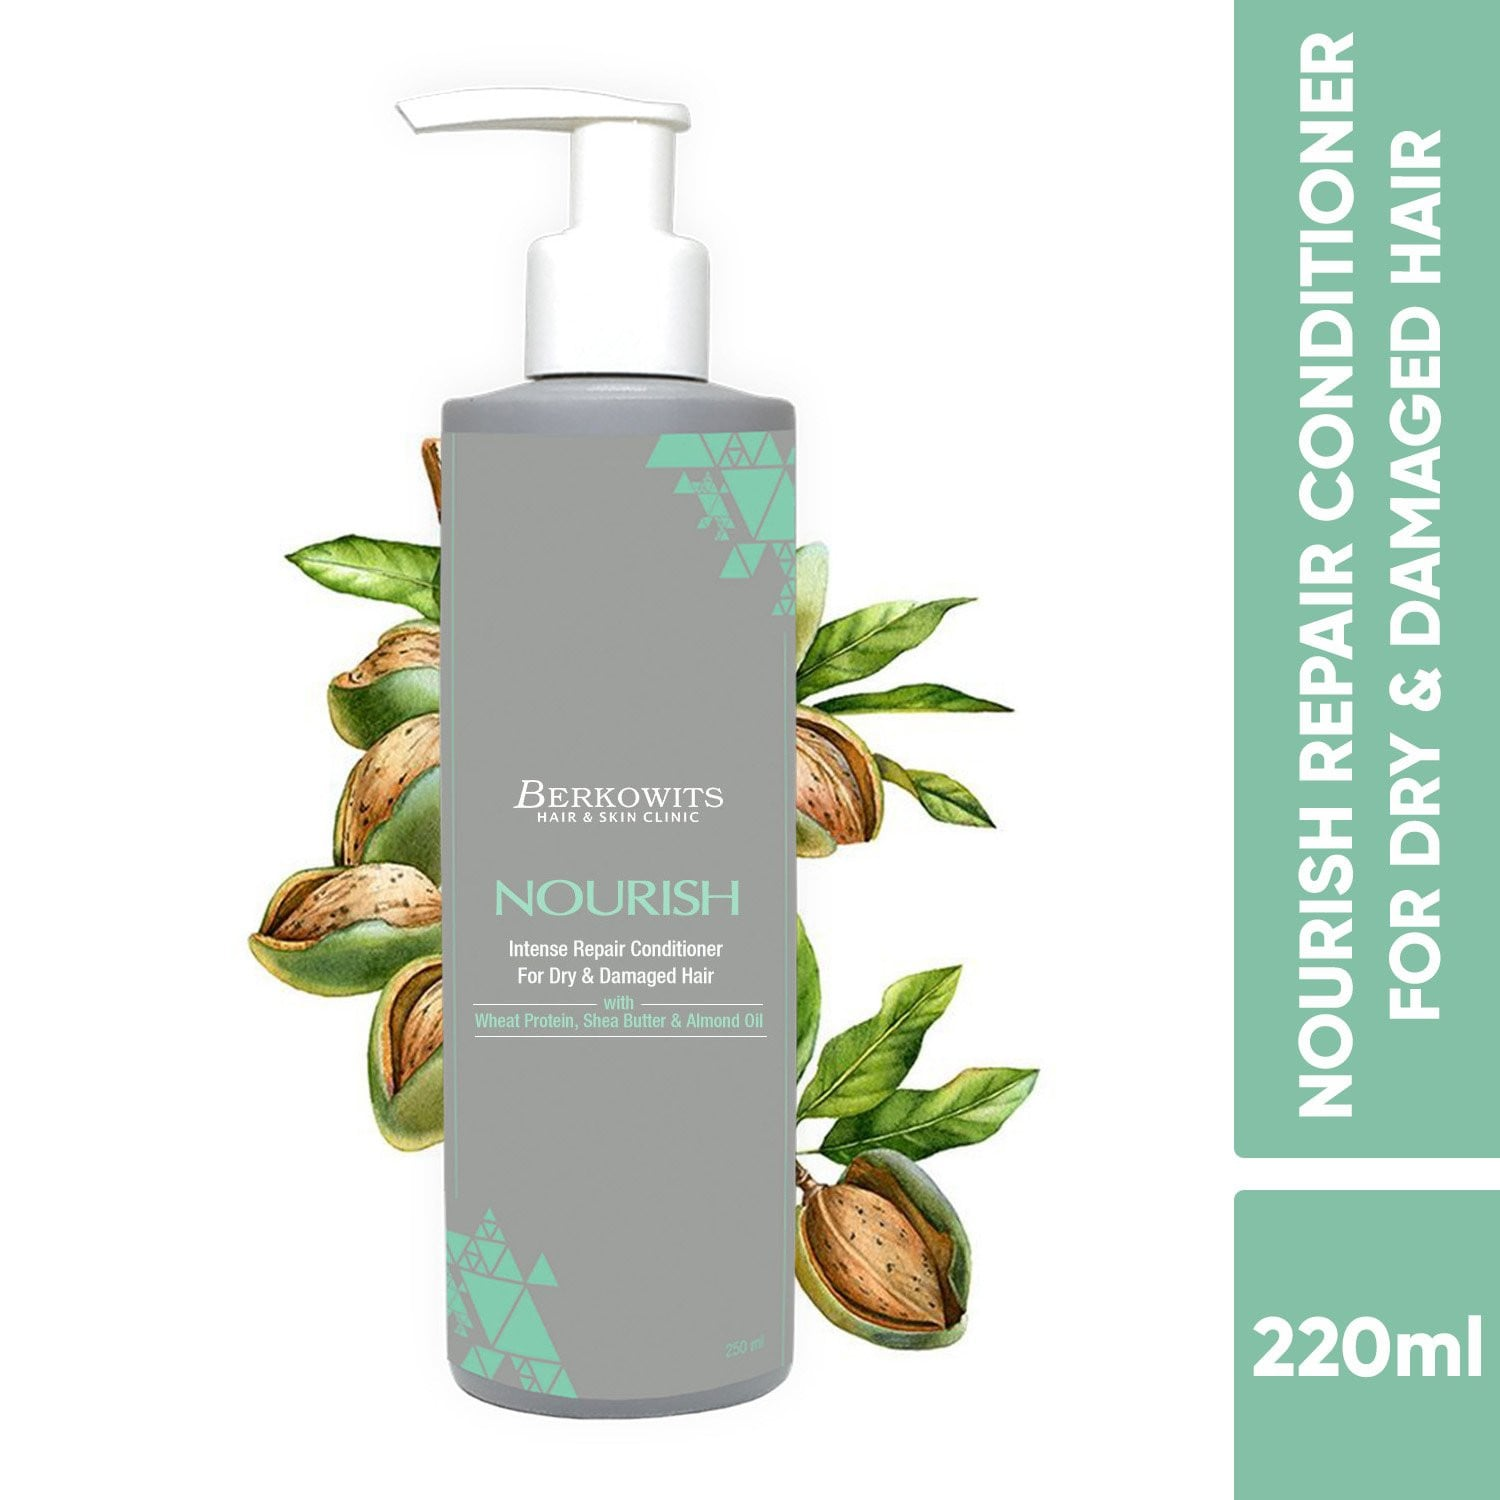 Berkowits Nourish Intense Repair Conditioner For Dry & Damaged Hair